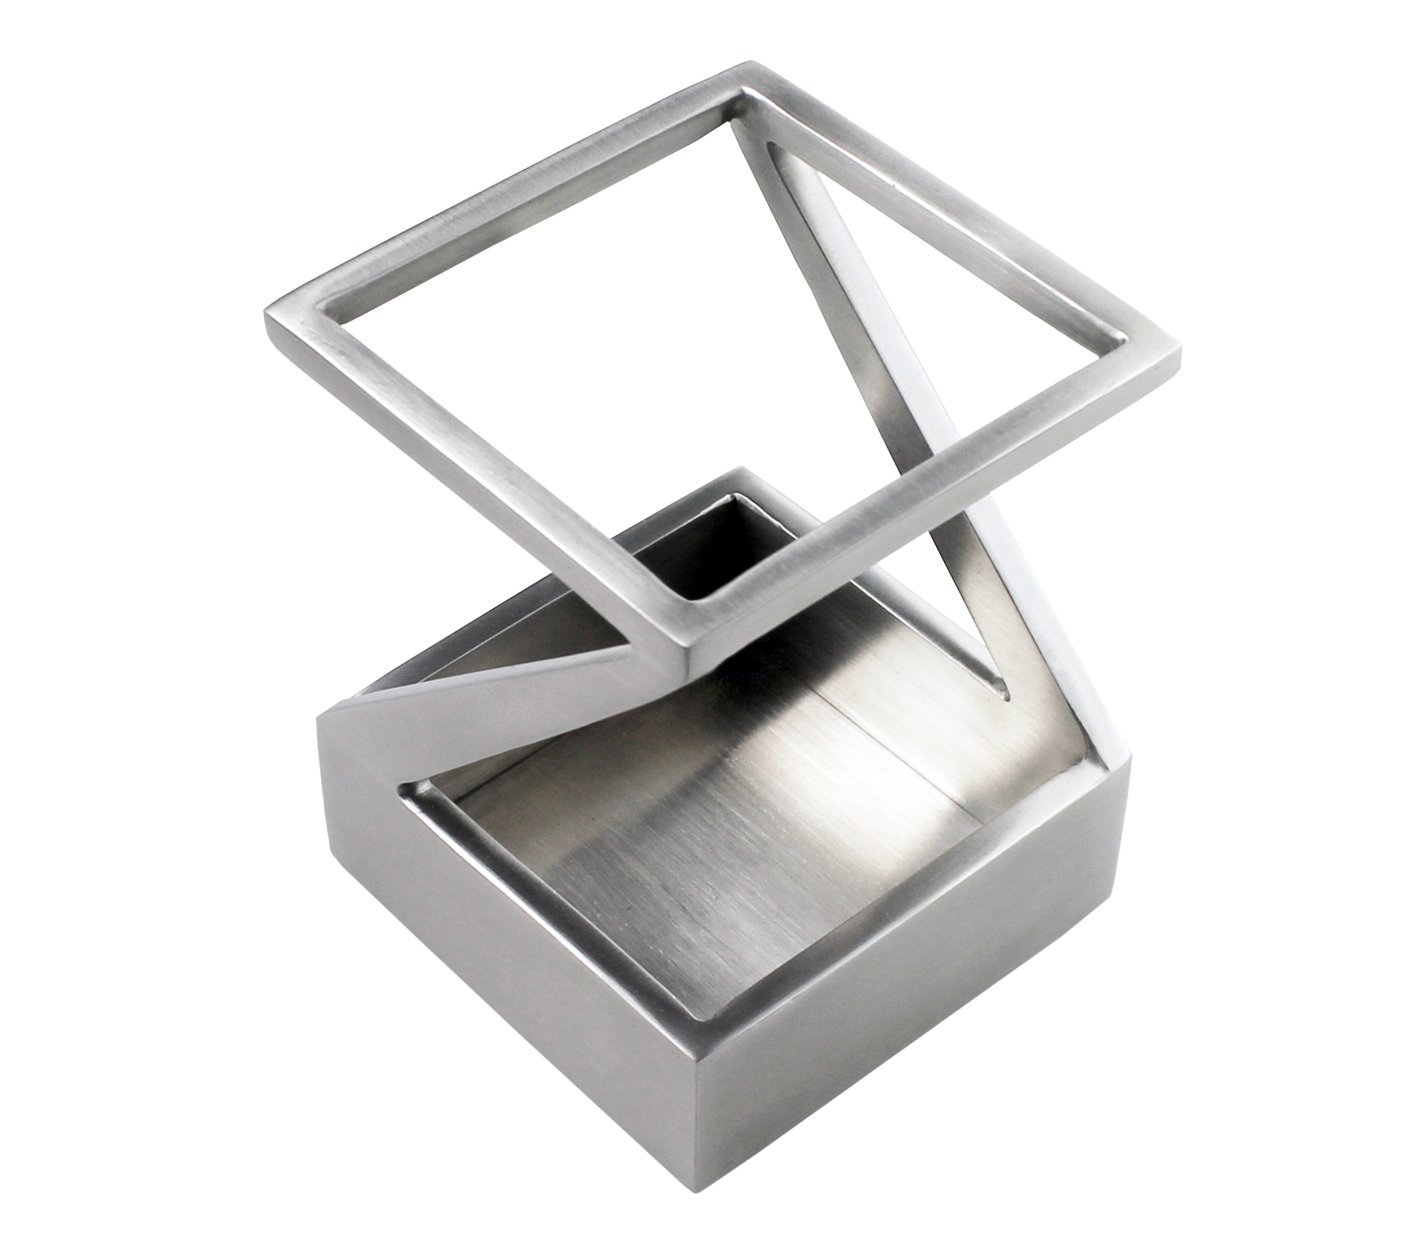 ArtsOnDesk Modern Art Pen and Pencil Holder St203 Stainless Steel Satin Finish Patented - High-end Deck Accessory Desktop Pen Case Cup Tray Stand Office Organizer Christmas Valentines Gift by ArtsOnDesk